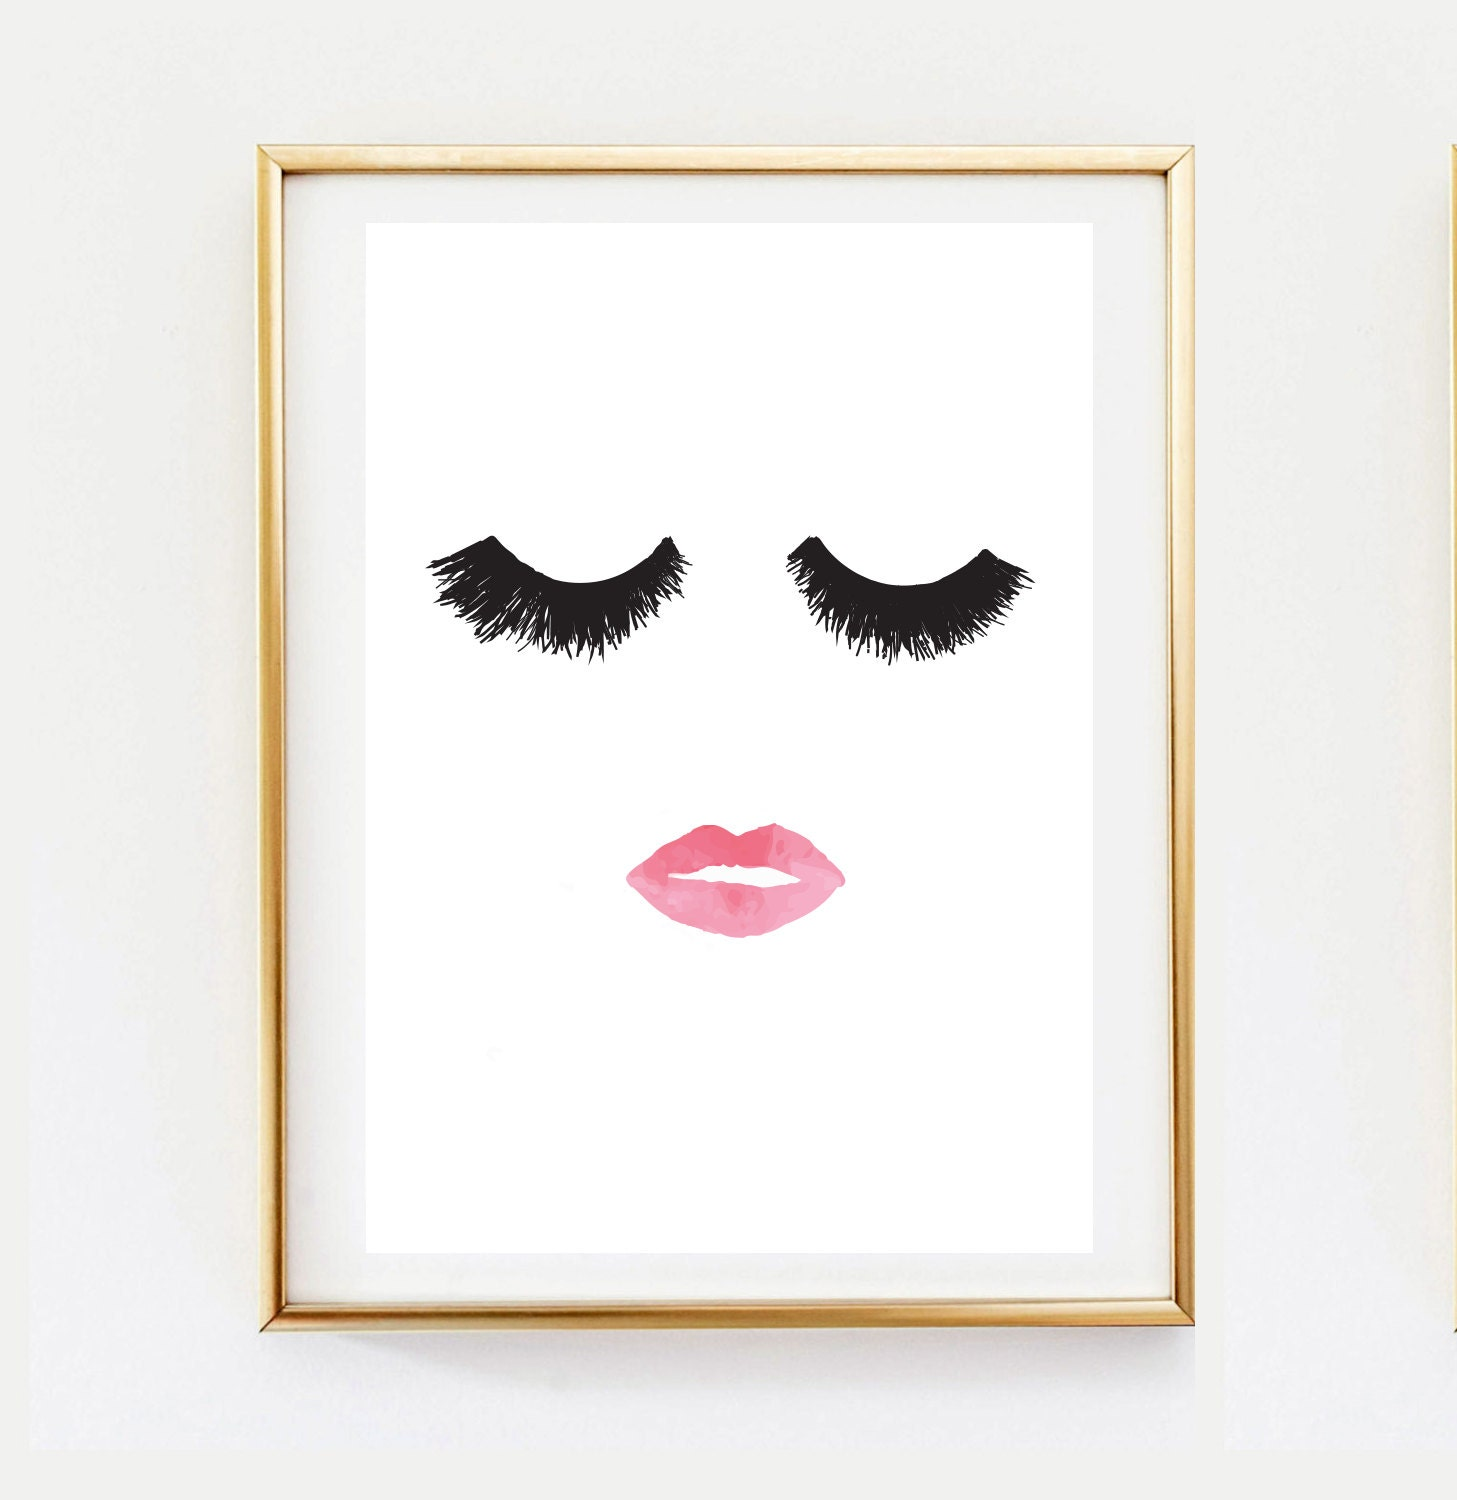 Makeup print wall decor home decor wall art minimalist for Poster decoratif